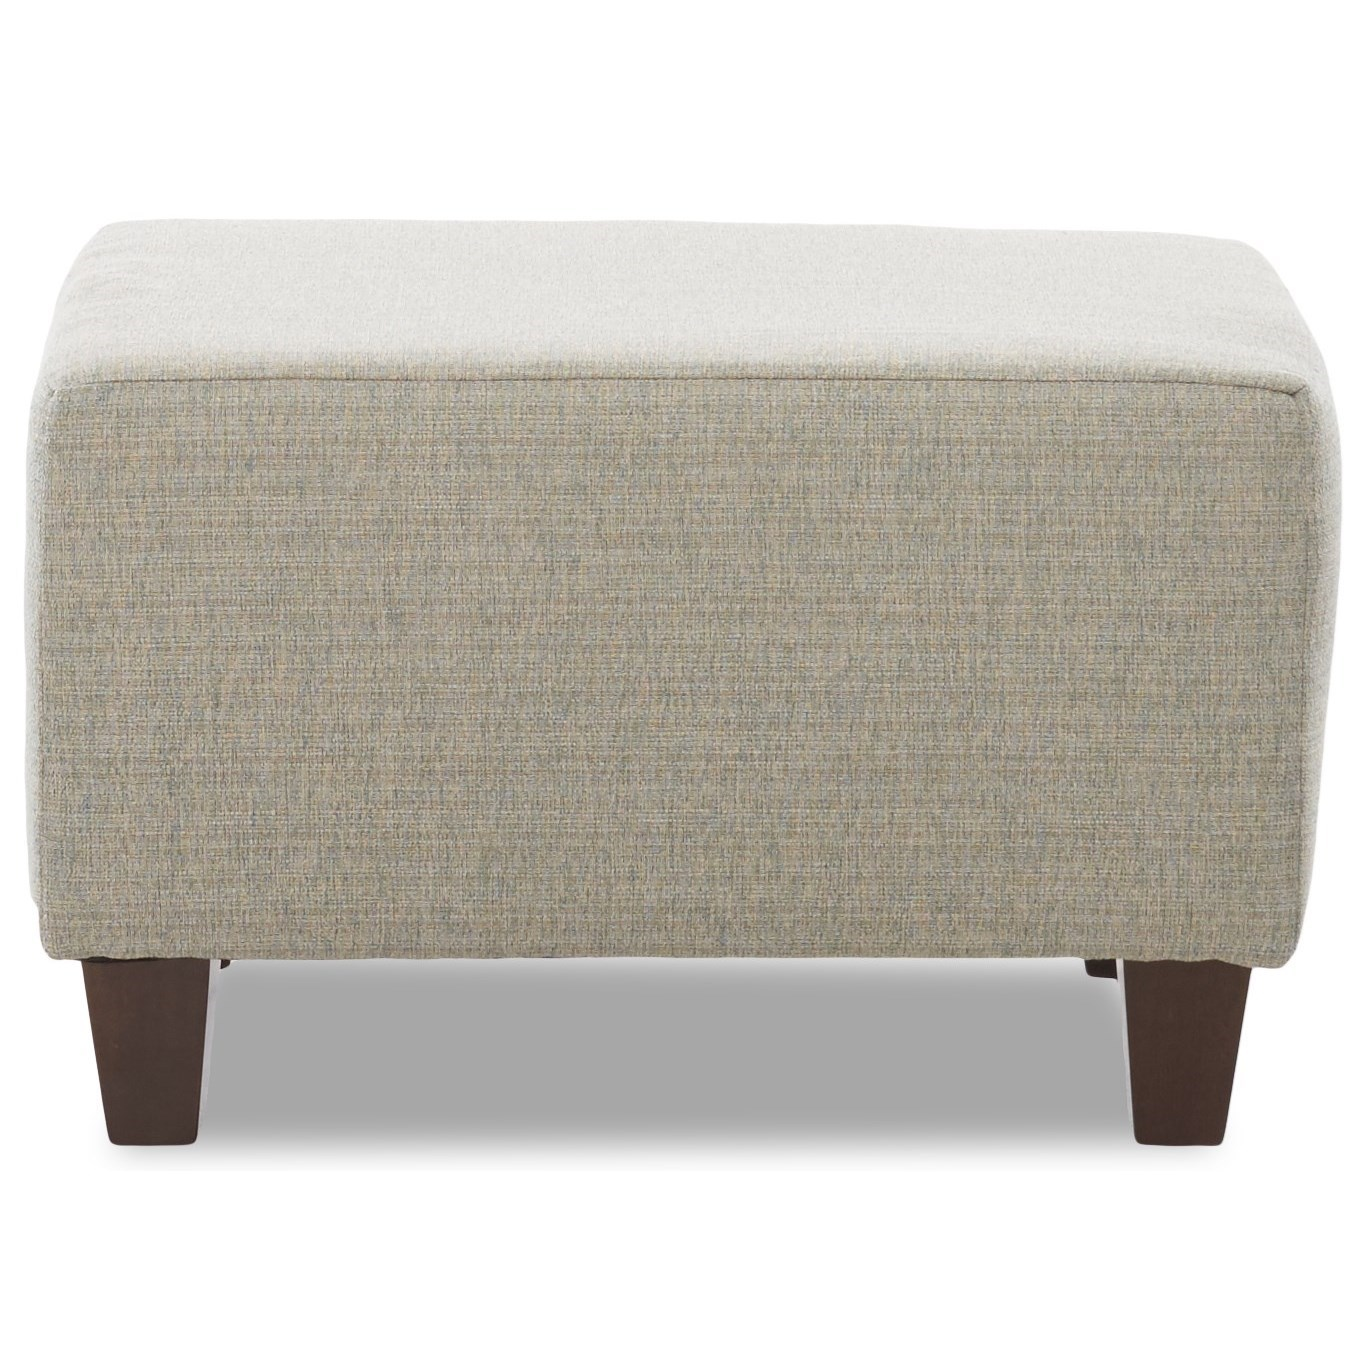 Marjorie Rectangular Ottoman by Klaussner at Northeast Factory Direct